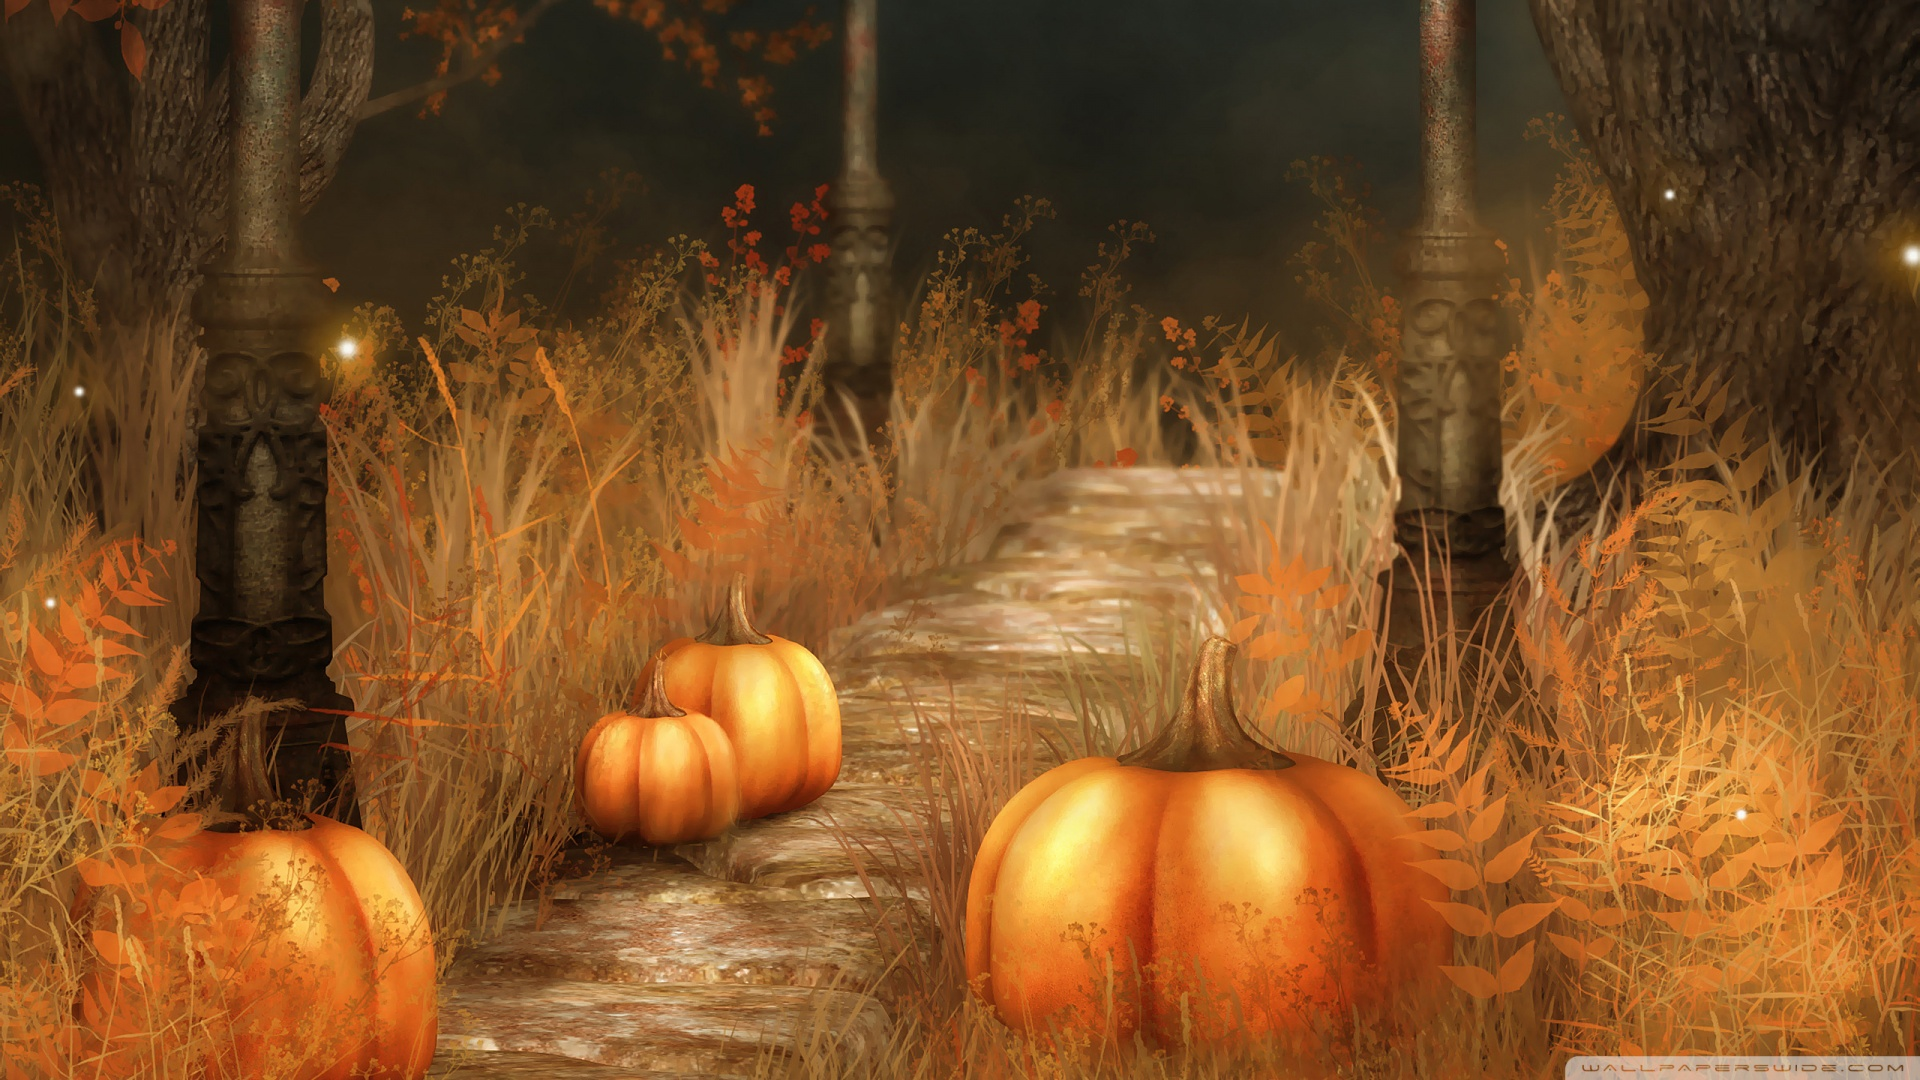 Cute Fall Pumpkins Wallpaper | Pumpkins Halloween Wallpaper Free